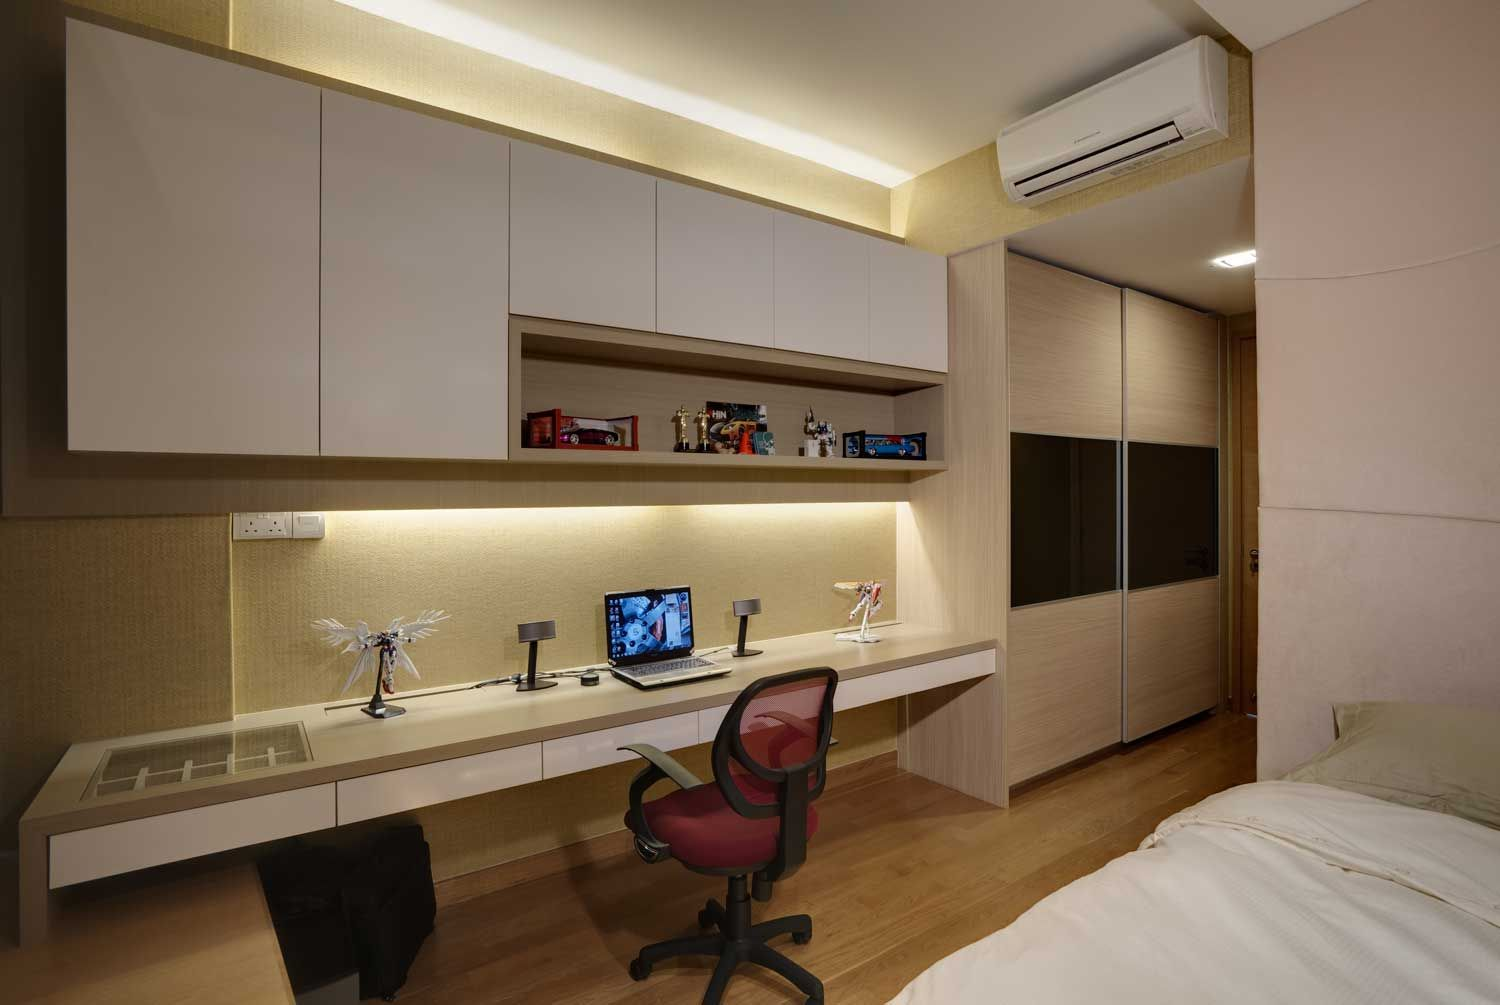 Homework spaces and study room ideas you ll love modern for Room decor ideas singapore